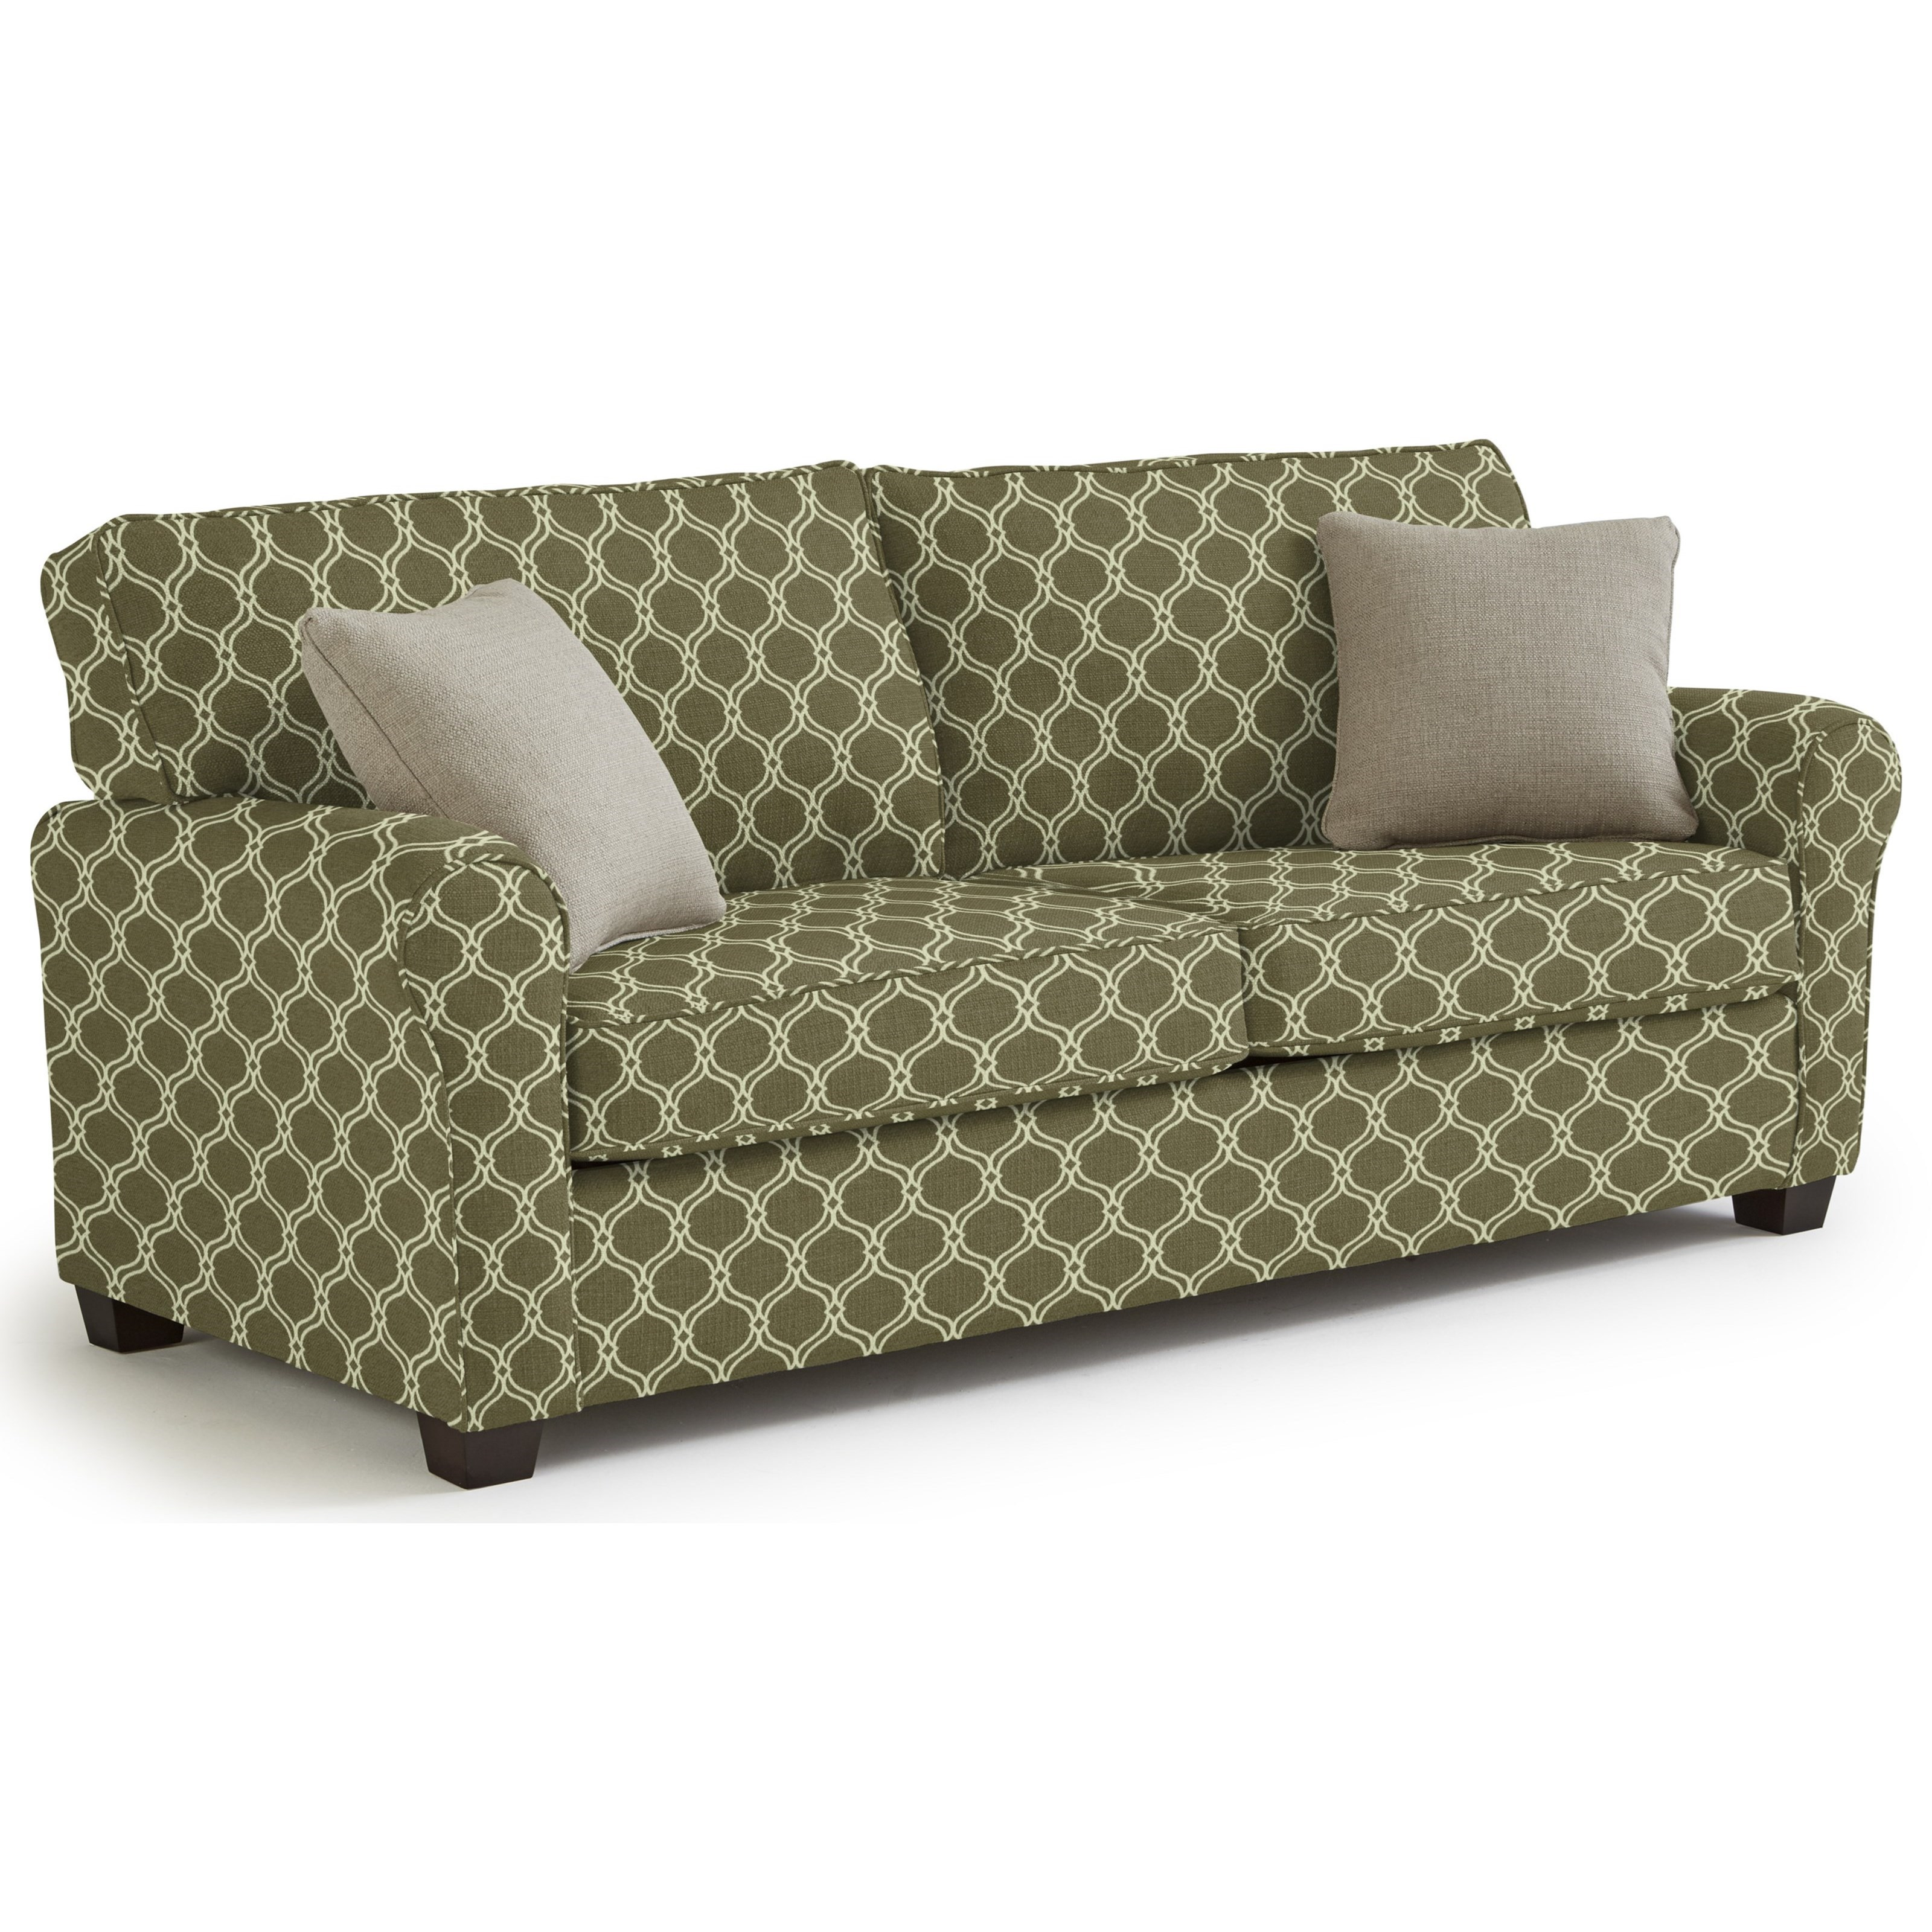 Shannon Queen Sofa Sleeper by Best Home Furnishings at Lucas Furniture & Mattress